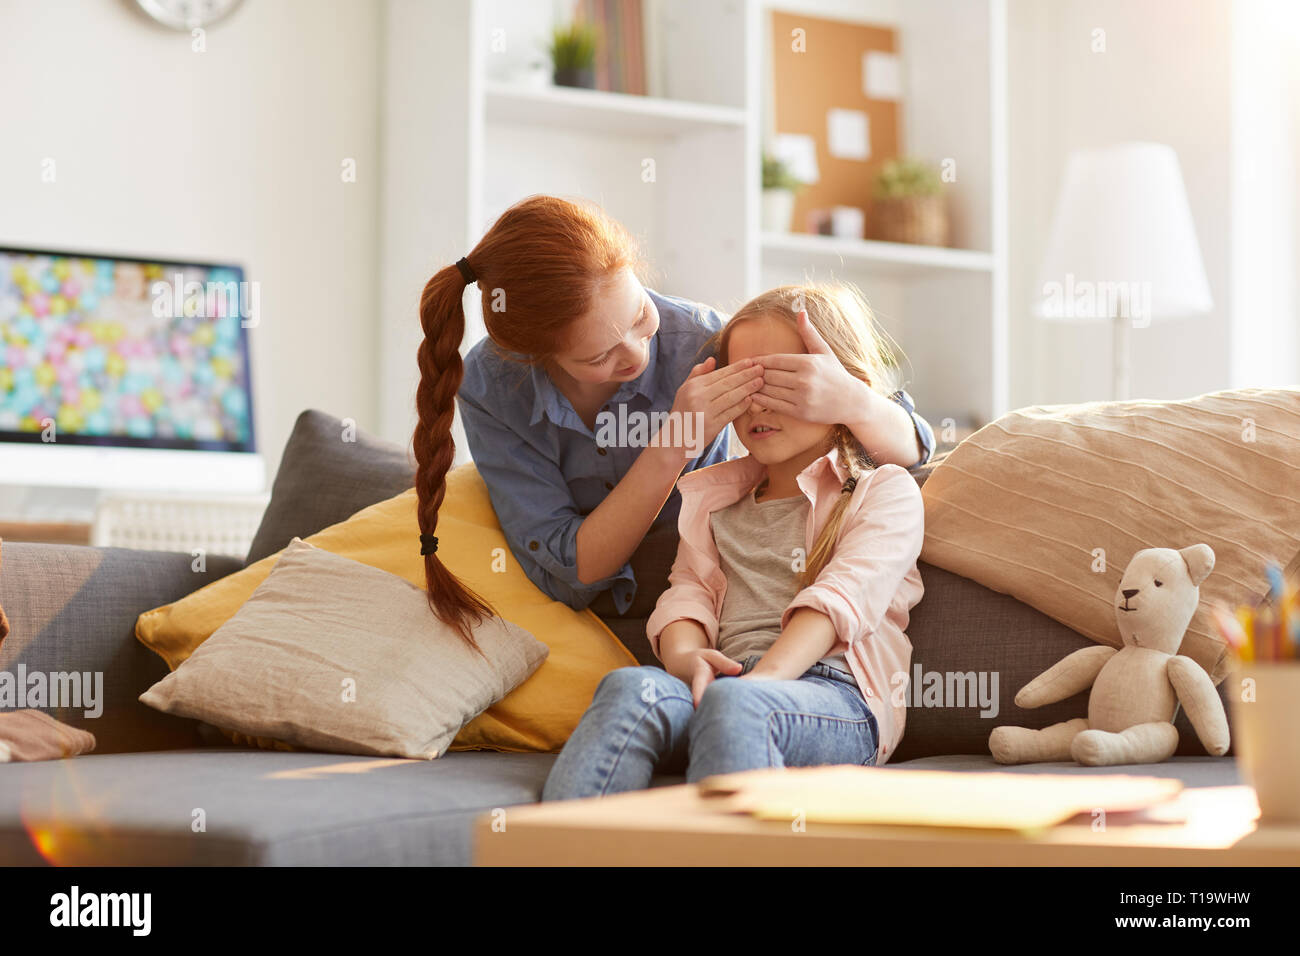 Sisters Playing Peek a boo - Stock Image